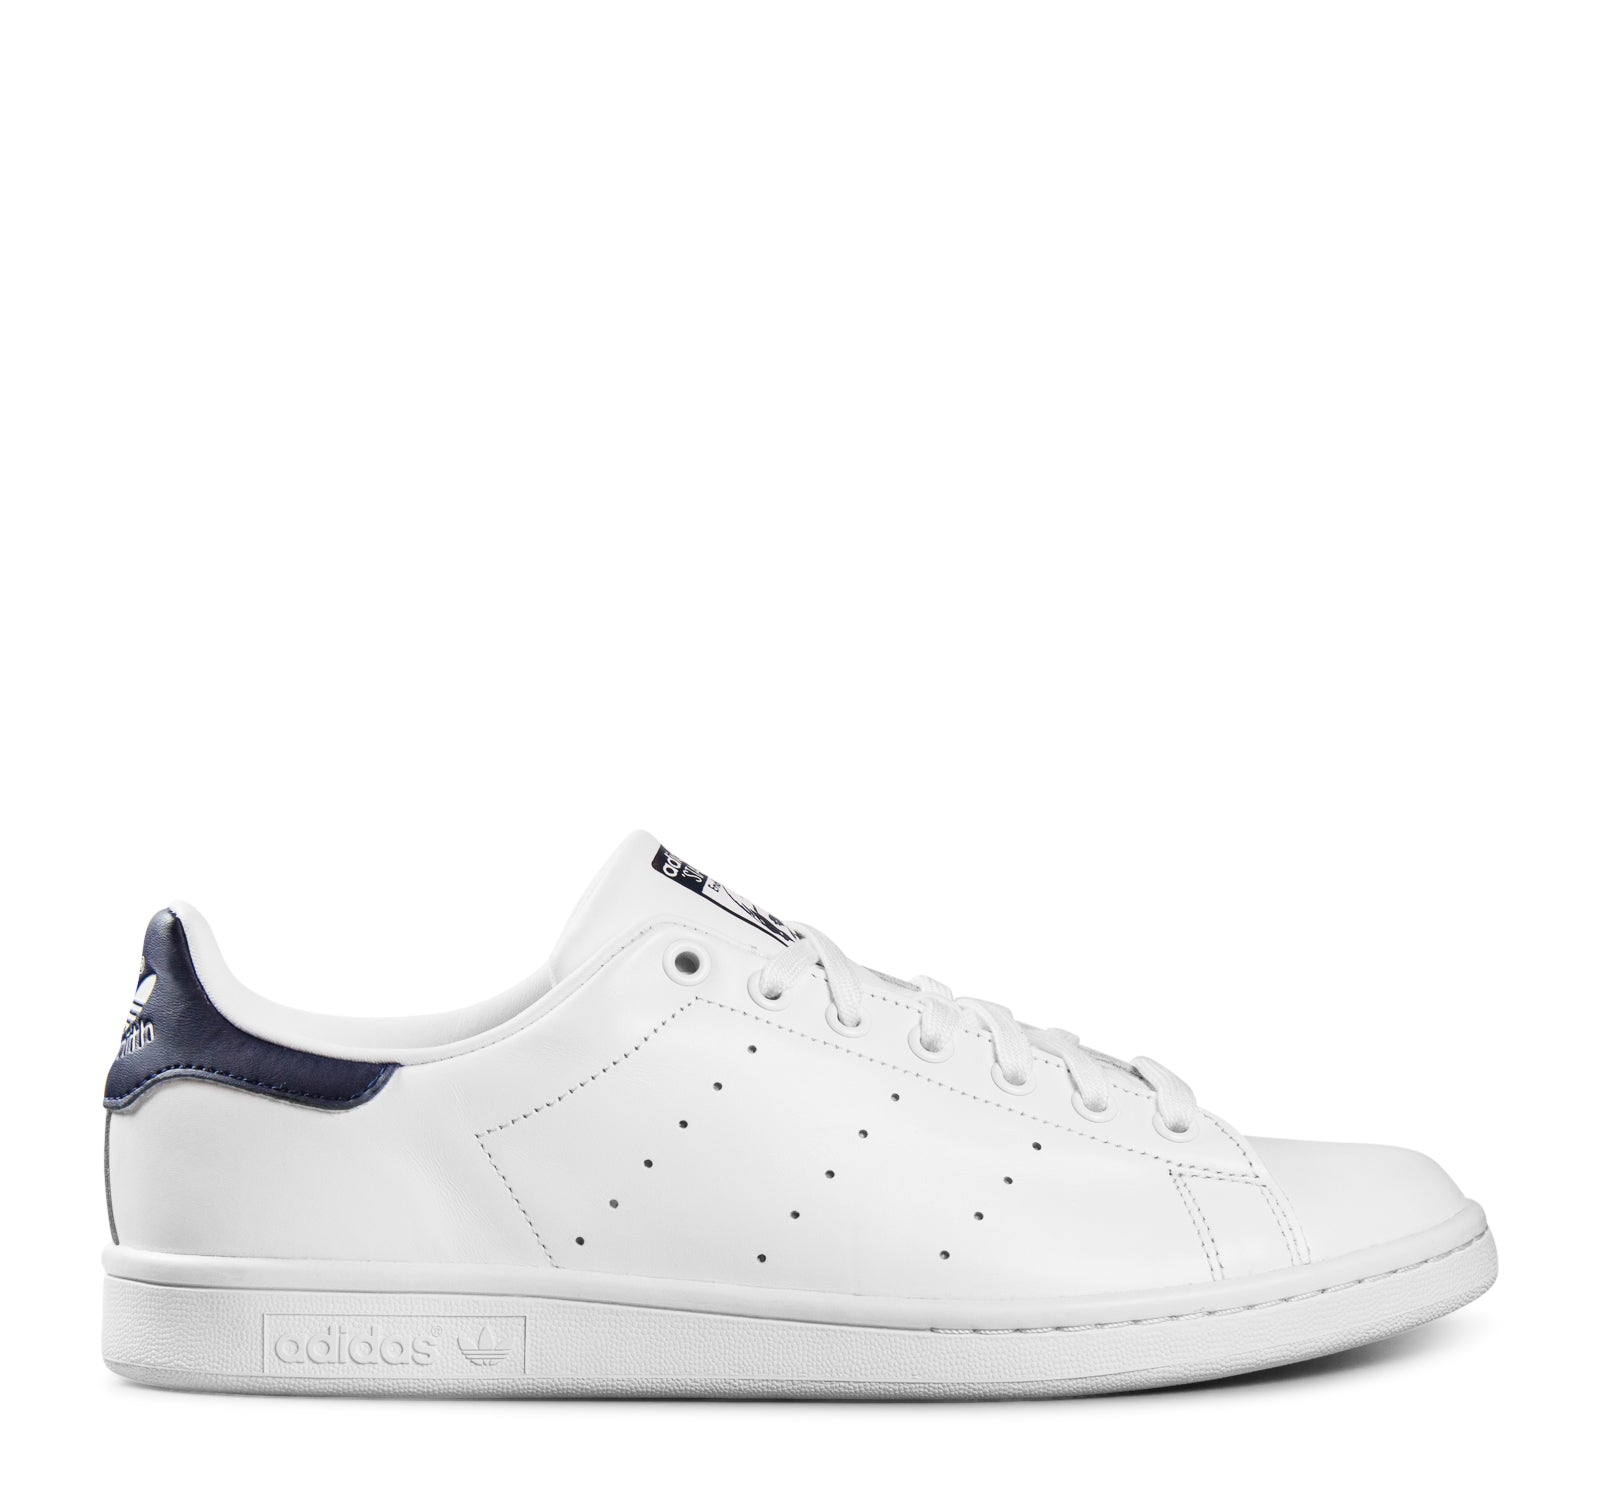 adidas stans smith m20325